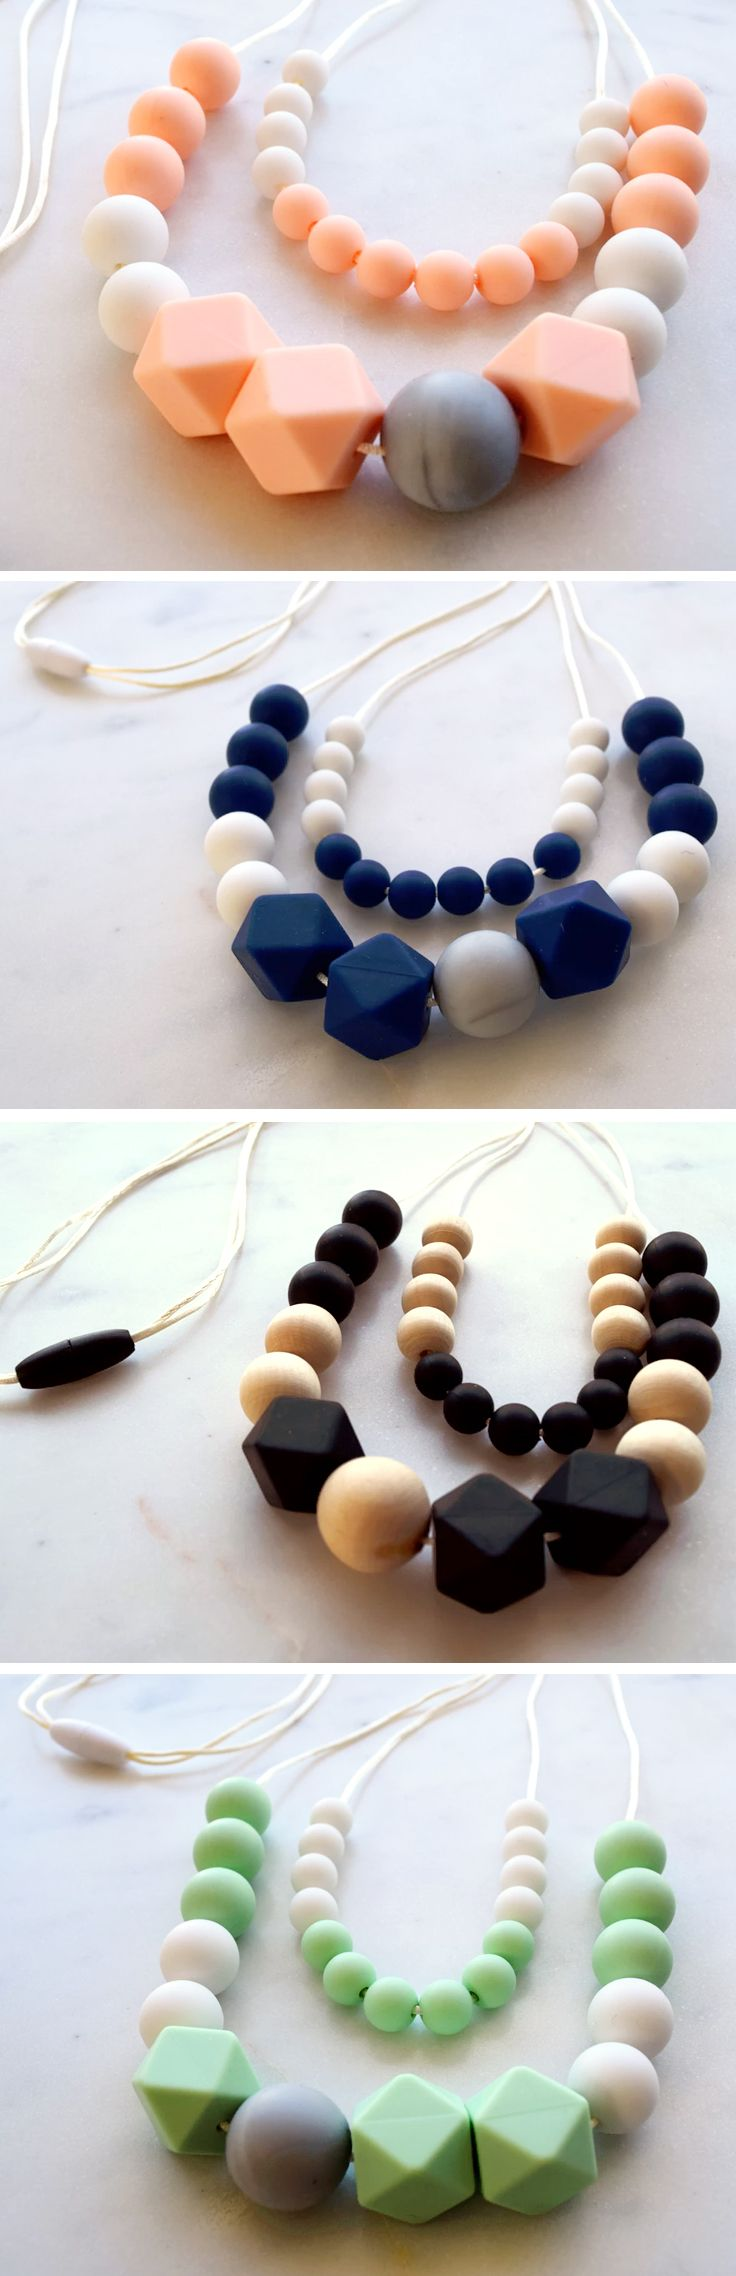 Best 25 homemade necklaces ideas on pinterest diy necklace womens teething necklaces stylish teething accessories handmade from non toxic silicone and wooden beads by zie and me these are the perfect necklaces fandeluxe Images